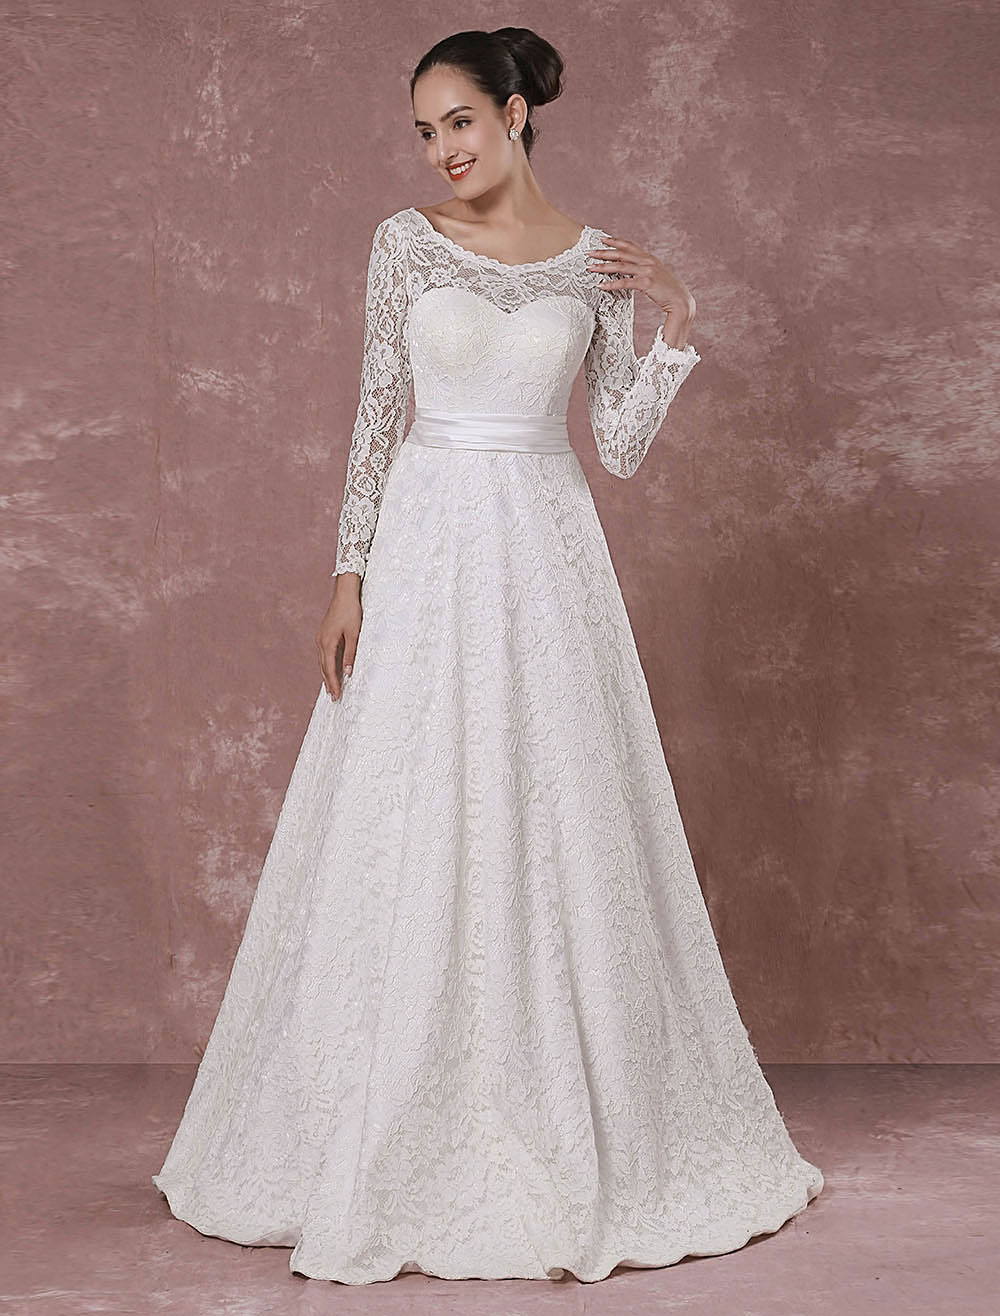 Lace Wedding Dress Backless Long Sleeves Bridal Gown A-line Floor-length Luxury Bridal Dress photo